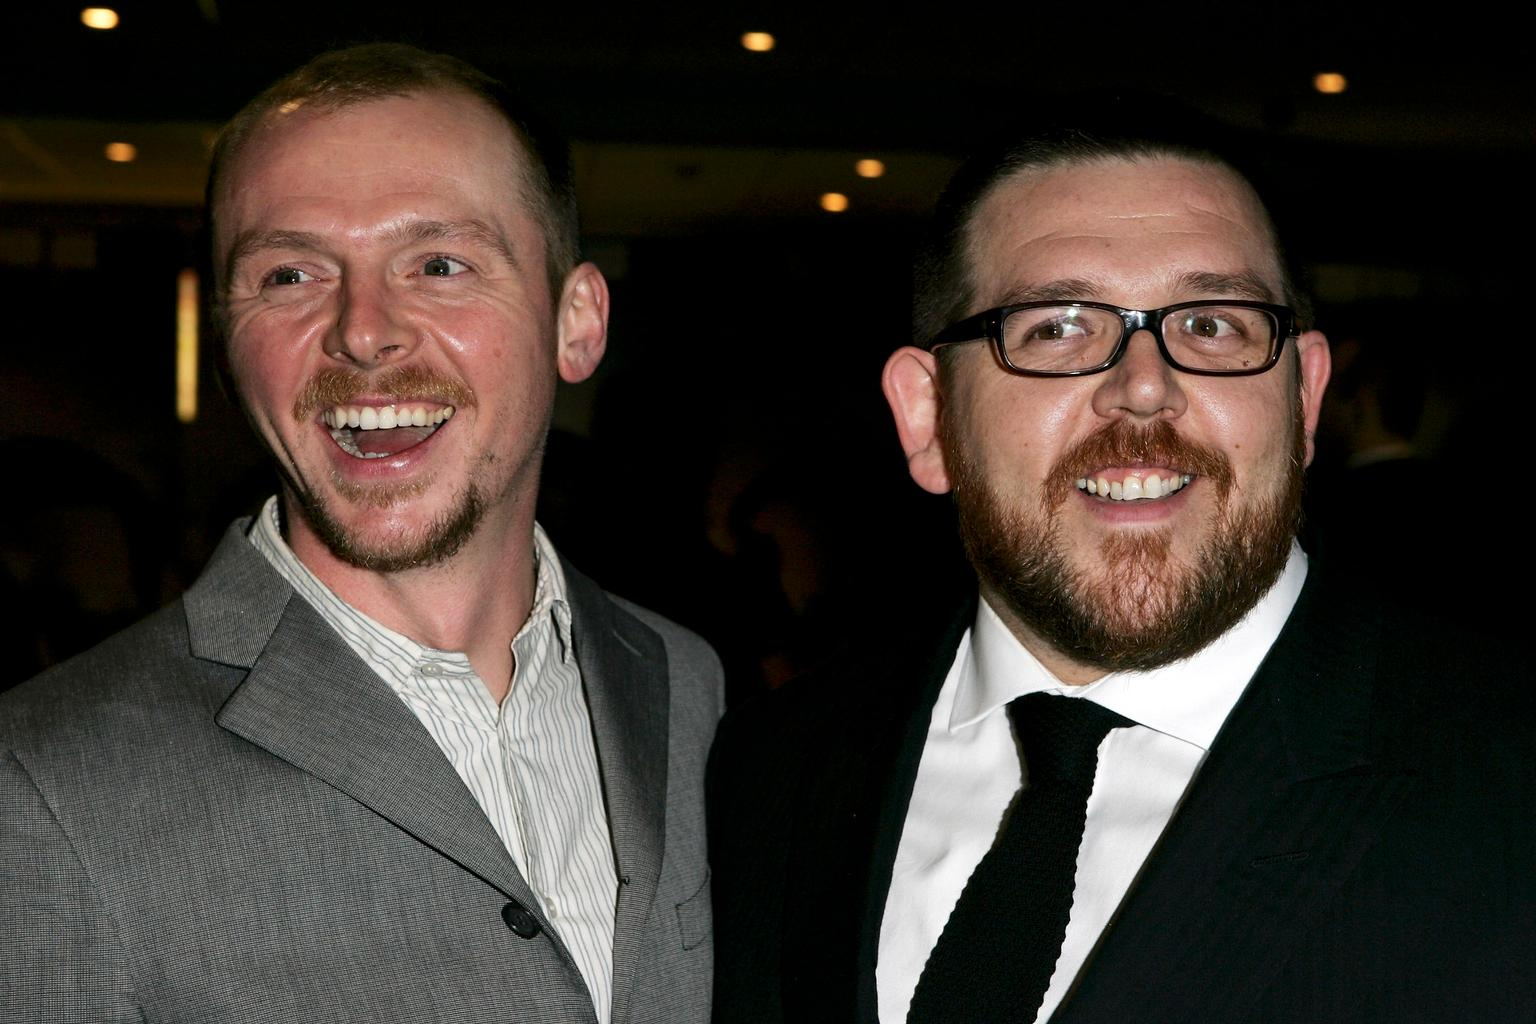 nick frost gifnick frost height, nick frost instagram, nick frost wife, nick frost imdb, nick frost doctor who, nick frost net worth, nick frost beard, nick frost gif, nick frost bio, nick frost spaced, nick frost wiki, nick frost jojo rabbit, nick frost simon pegg, nick frost simon pegg movies, nick frost young, nick frost movies, nick frost fighting with my family, nick frost salsa movie